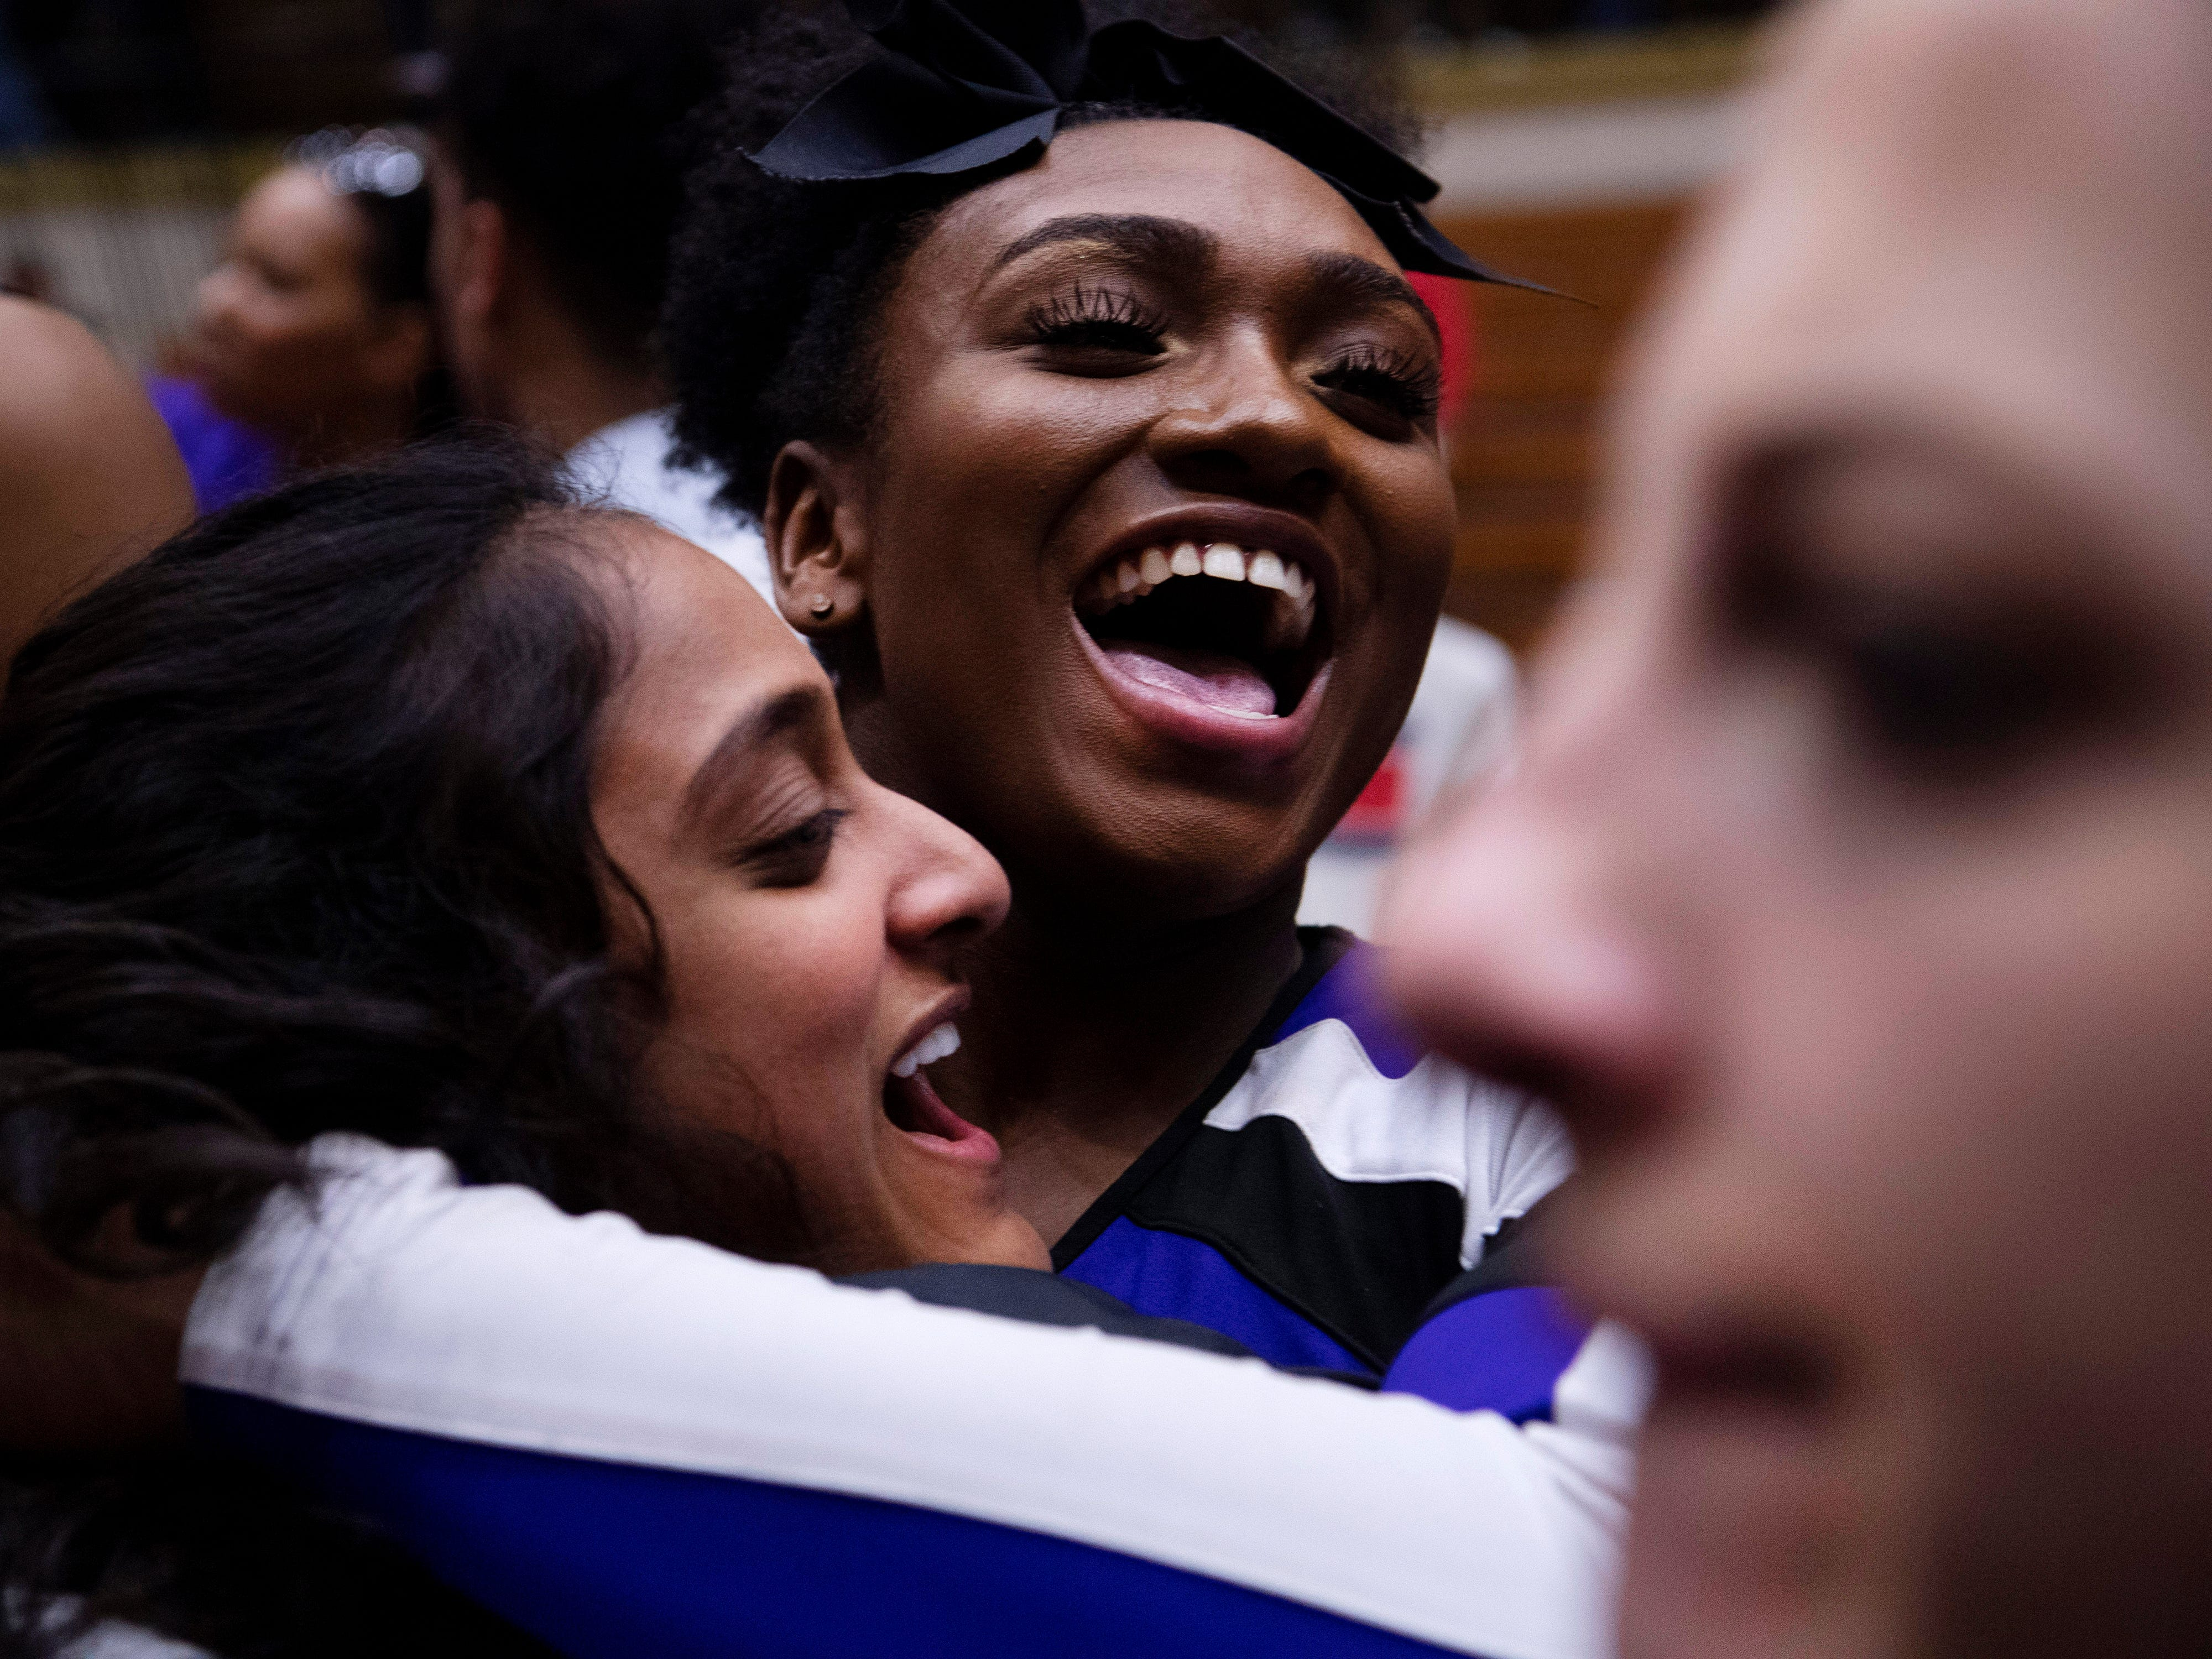 Ben Davis cheerleader Ashley Akin, top, celebrates with the students on the court after beating Center Grove in the 4A Boys Indiana Semi-State Basketball Tournament at the Hatchet House in Washington, Ind., Saturday afternoon. Ben Davis beat Central Grove to advance to next week's state championship.